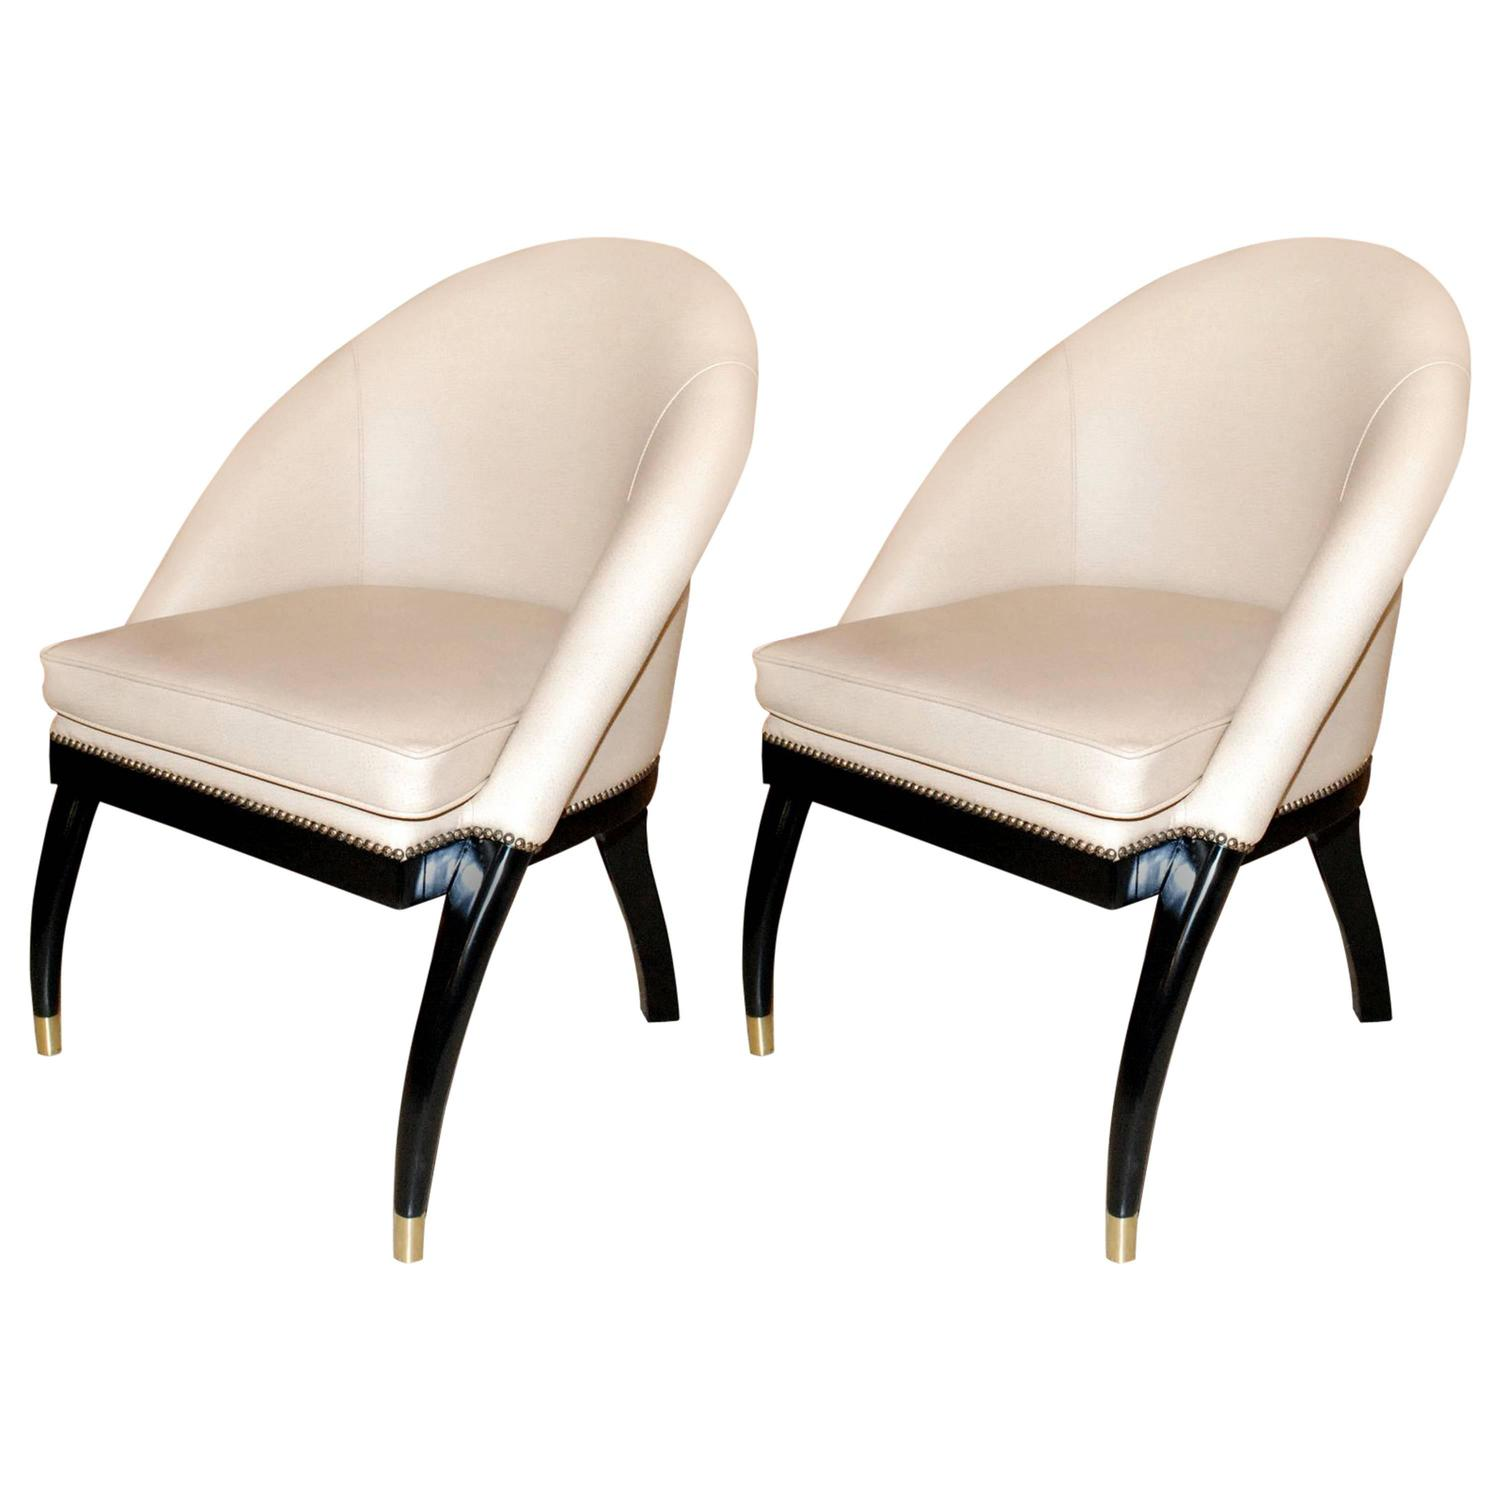 shelby williams chairs the wooden chair pair of side by for sale at 1stdibs